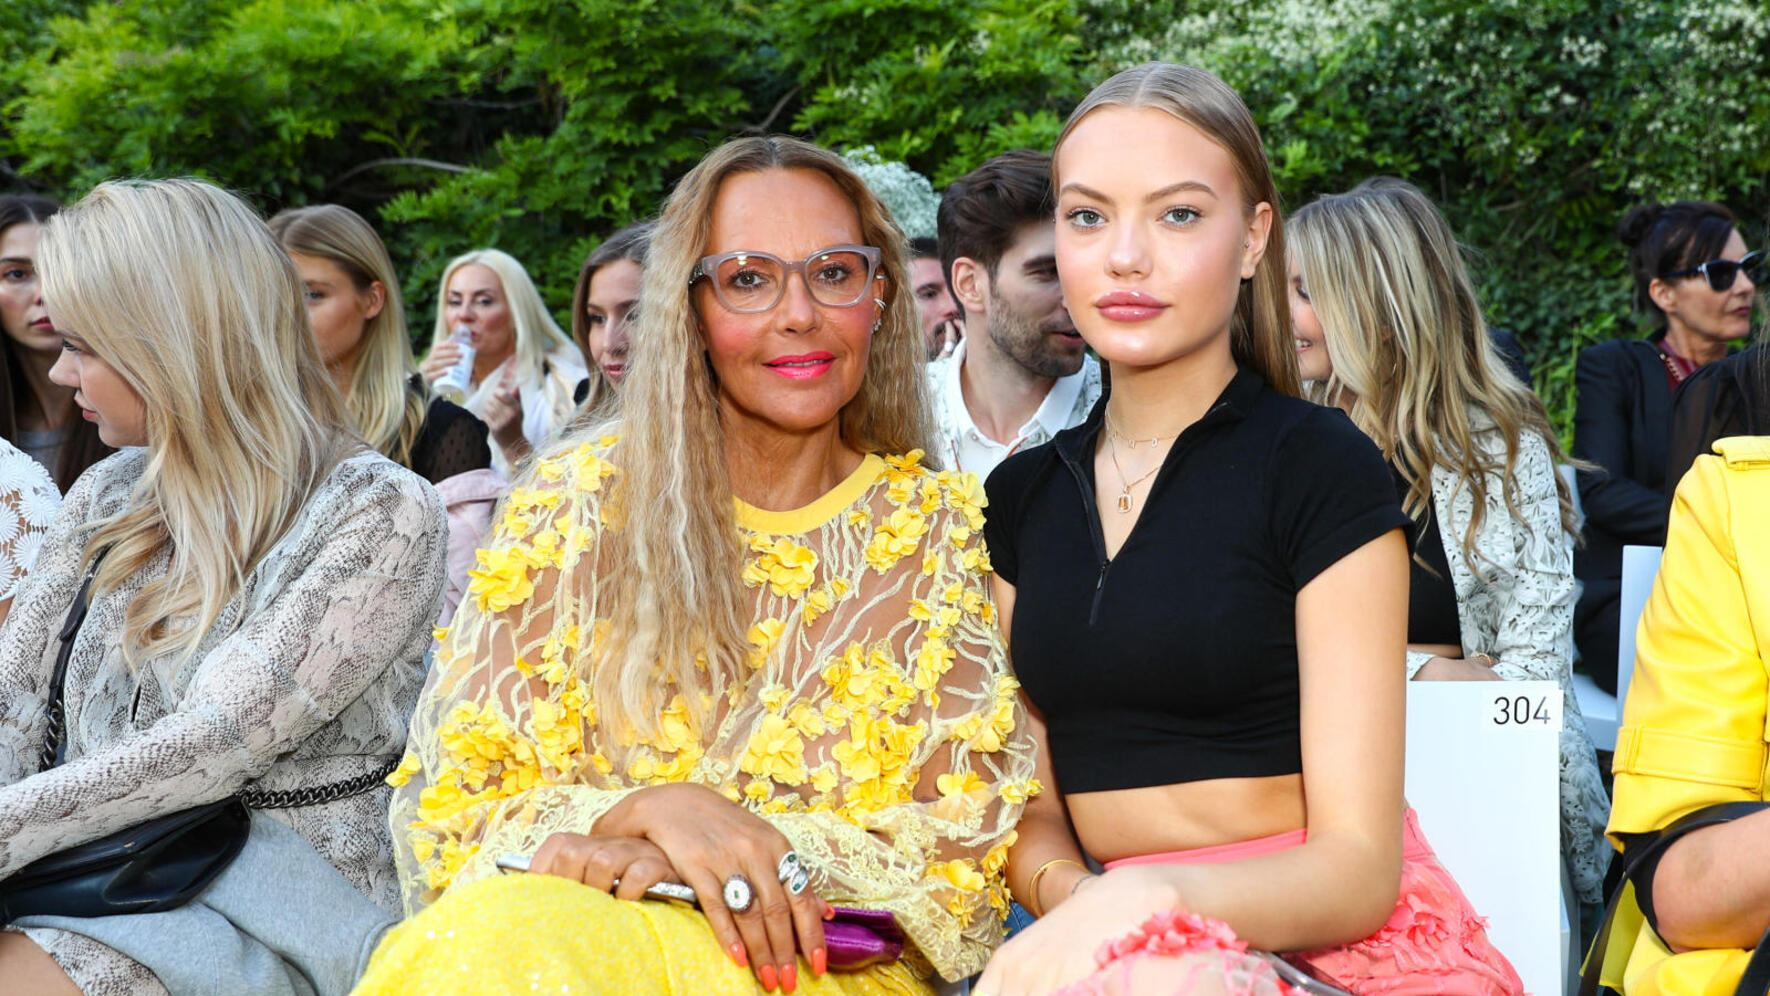 BERLIN, GERMANY - JULY 03: Cheyenne Savannah Ochsenknecht and Natascha Ochsenknecht at the Marcel Ostertag Fashion Show during the Berlin Fashion Week Spring/Summer 2020 at Westin Grand Hotel on July 03, 2019 in Berlin, Germany. (Photo by Brian Dowling/Getty Images for Marcel Ostertag )